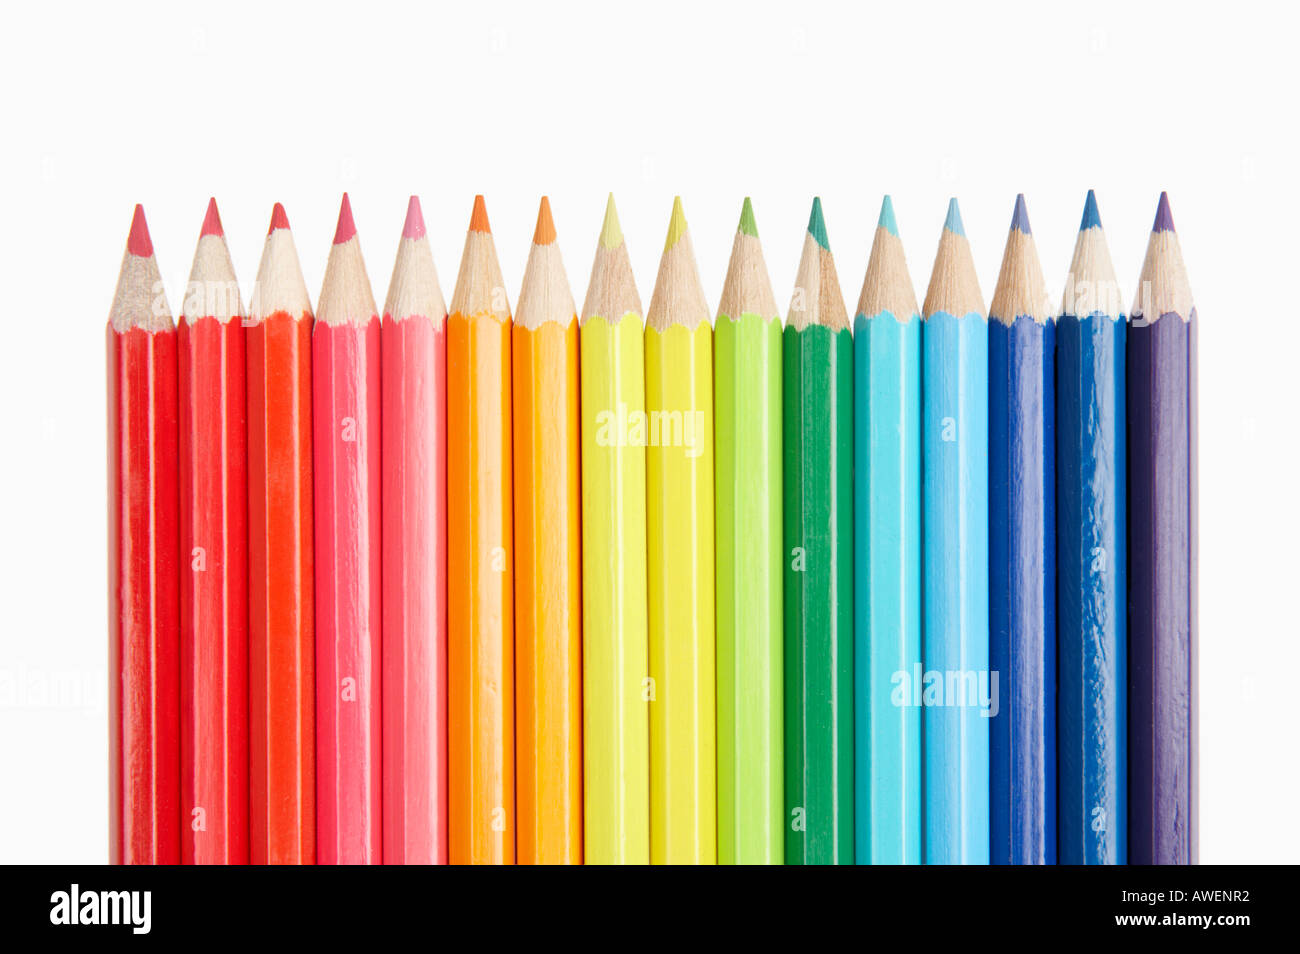 ROW OF SIXTEEN COLOURED PENCILS SHOWING SPECTRUM COLOURS OF THE RAINBOW - Stock Image